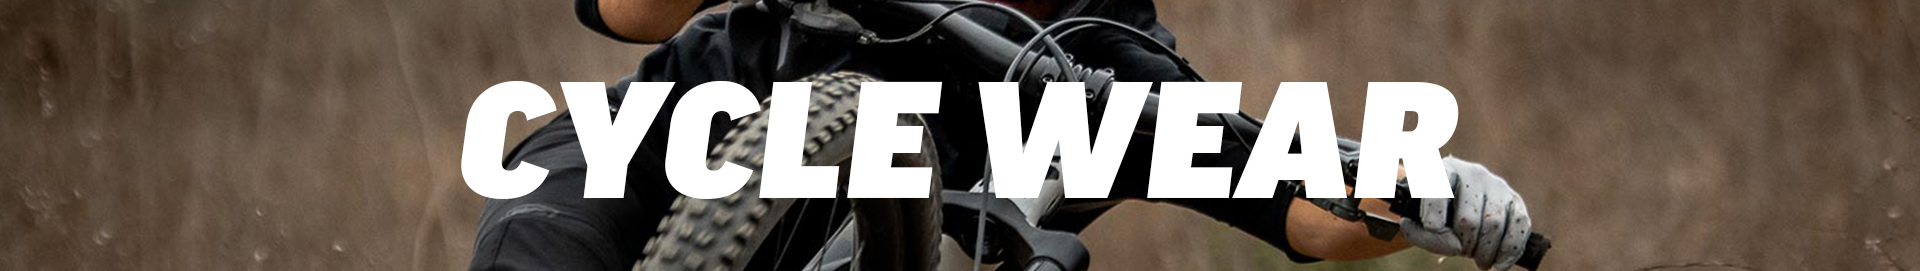 category-banner-cycle-wear.jpg